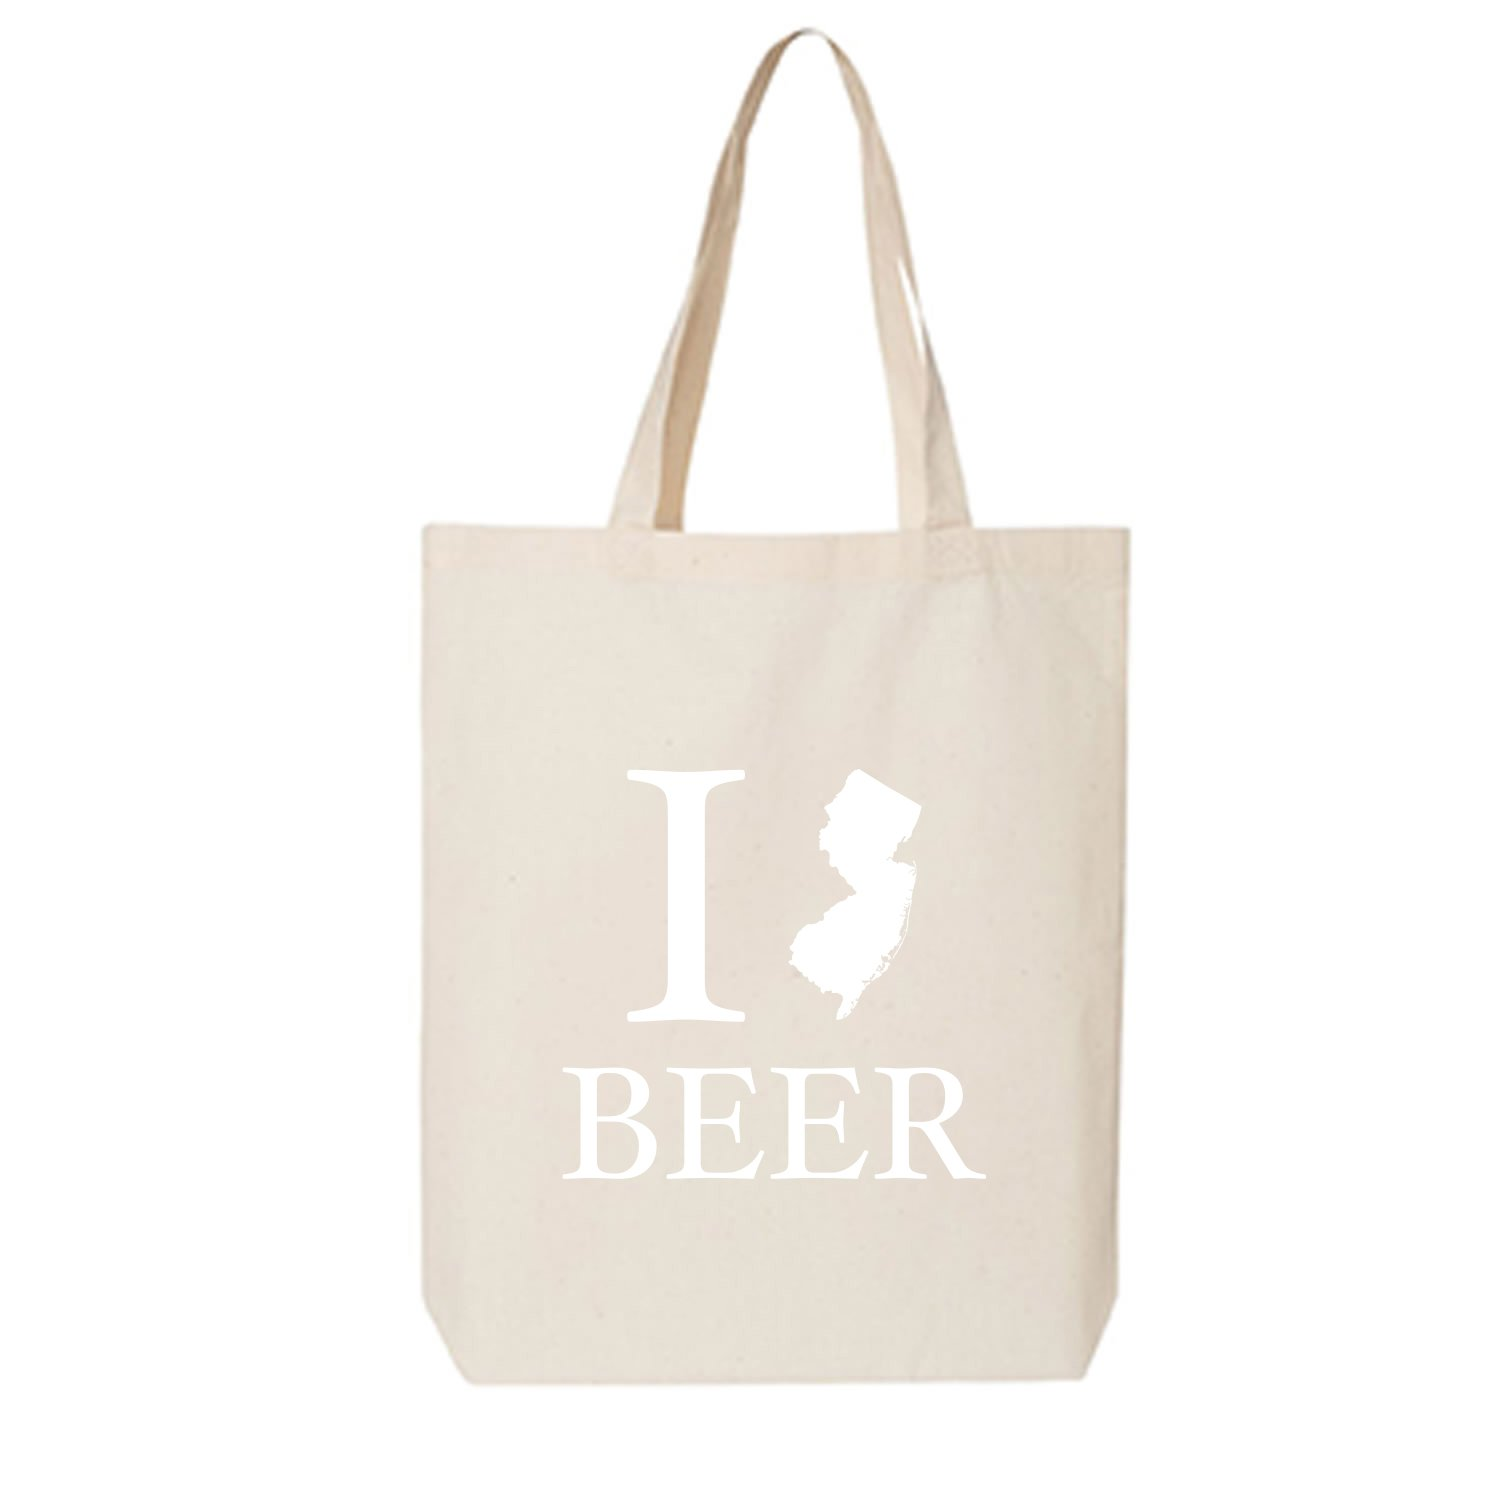 I Love New Jersey Beer Cotton Canvas Tote Bag in Natural - One Size